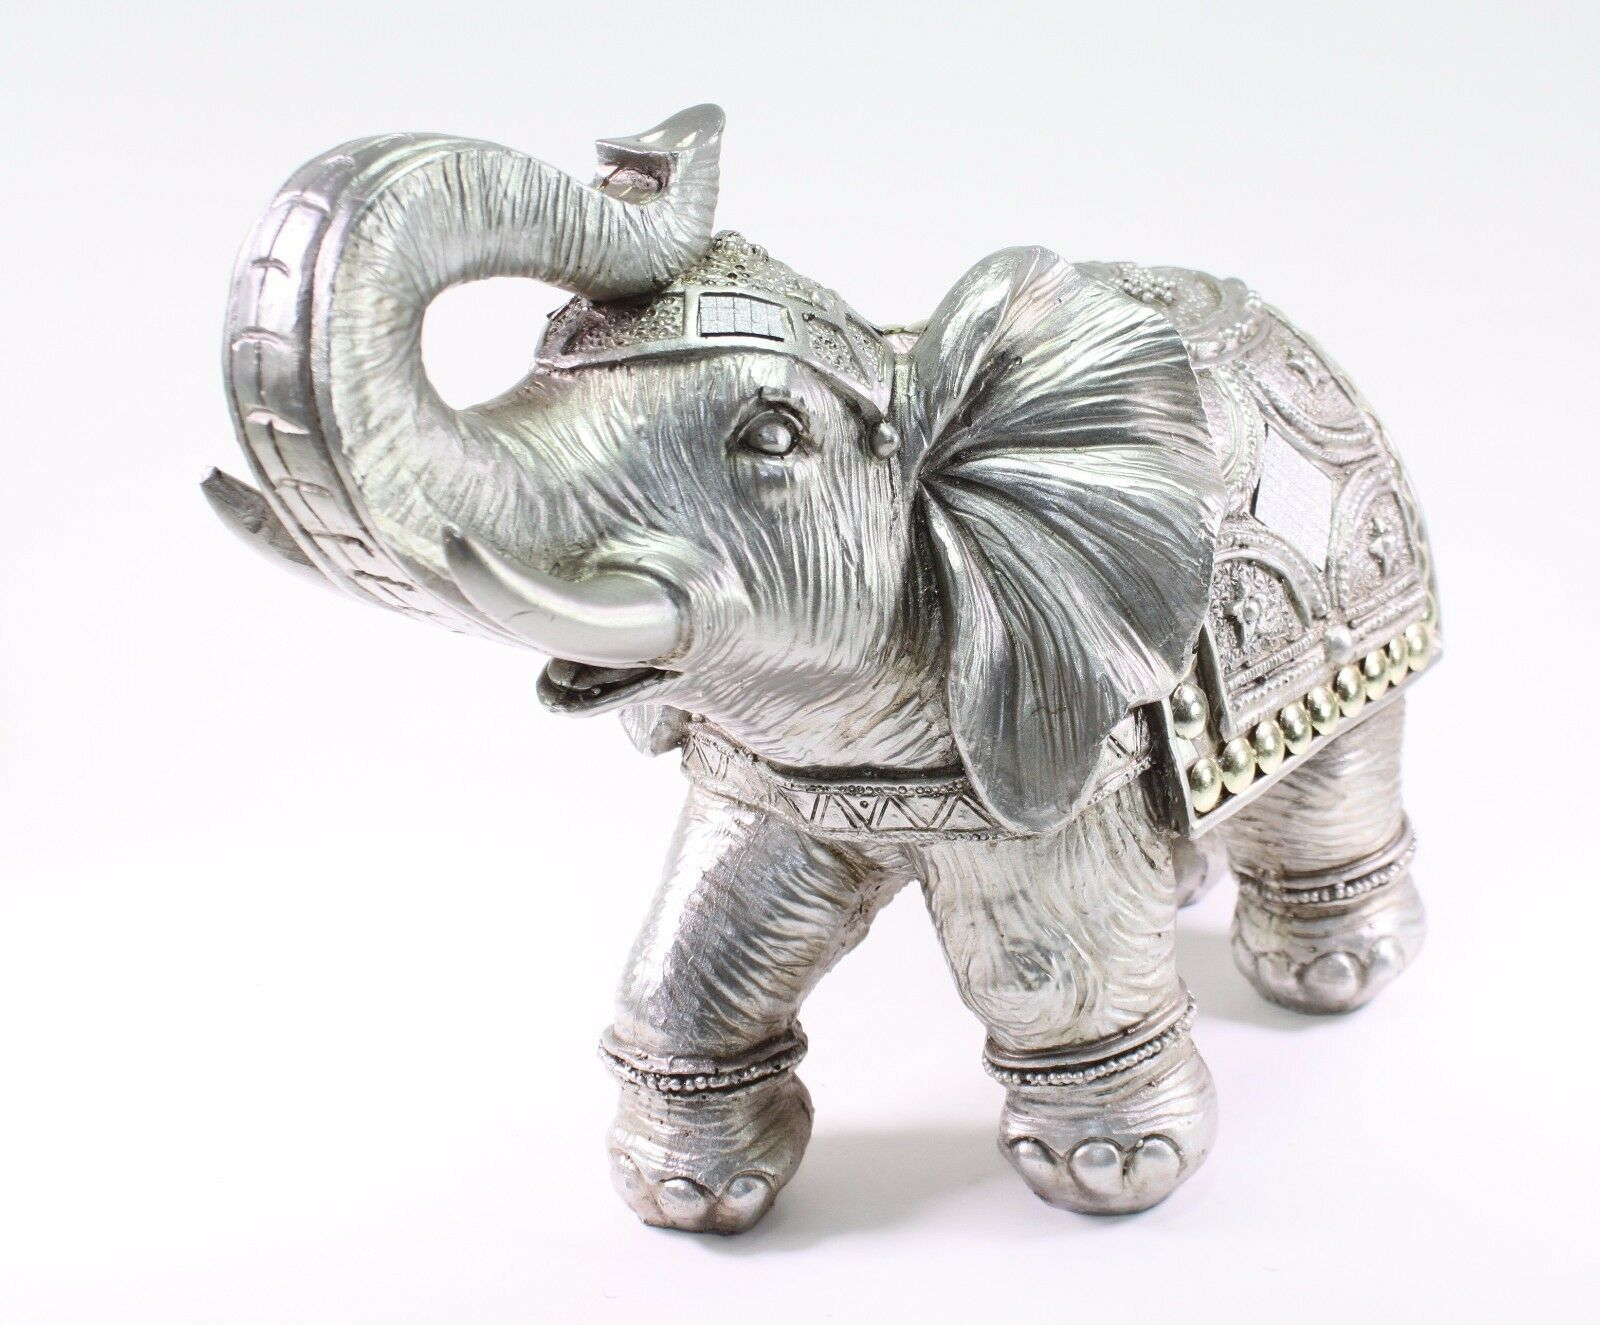 Feng shui 13 silver large elephant trunk statue lucky figurine gift home decor ebay Silver elephant home decor